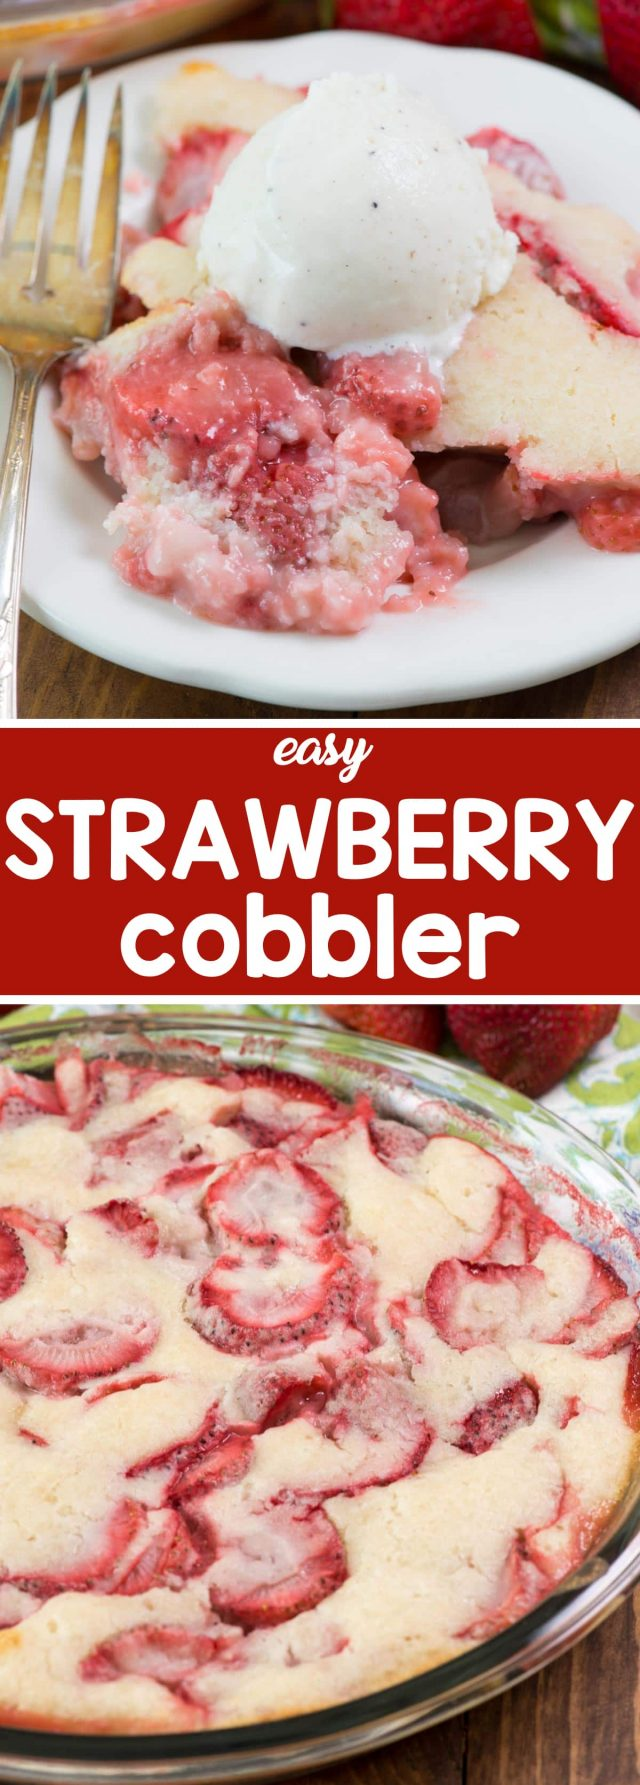 Easy Strawberry Cobbler - this easy cobbler recipe uses fresh berries and is topped with an easy batter that can be made lower in sugar!